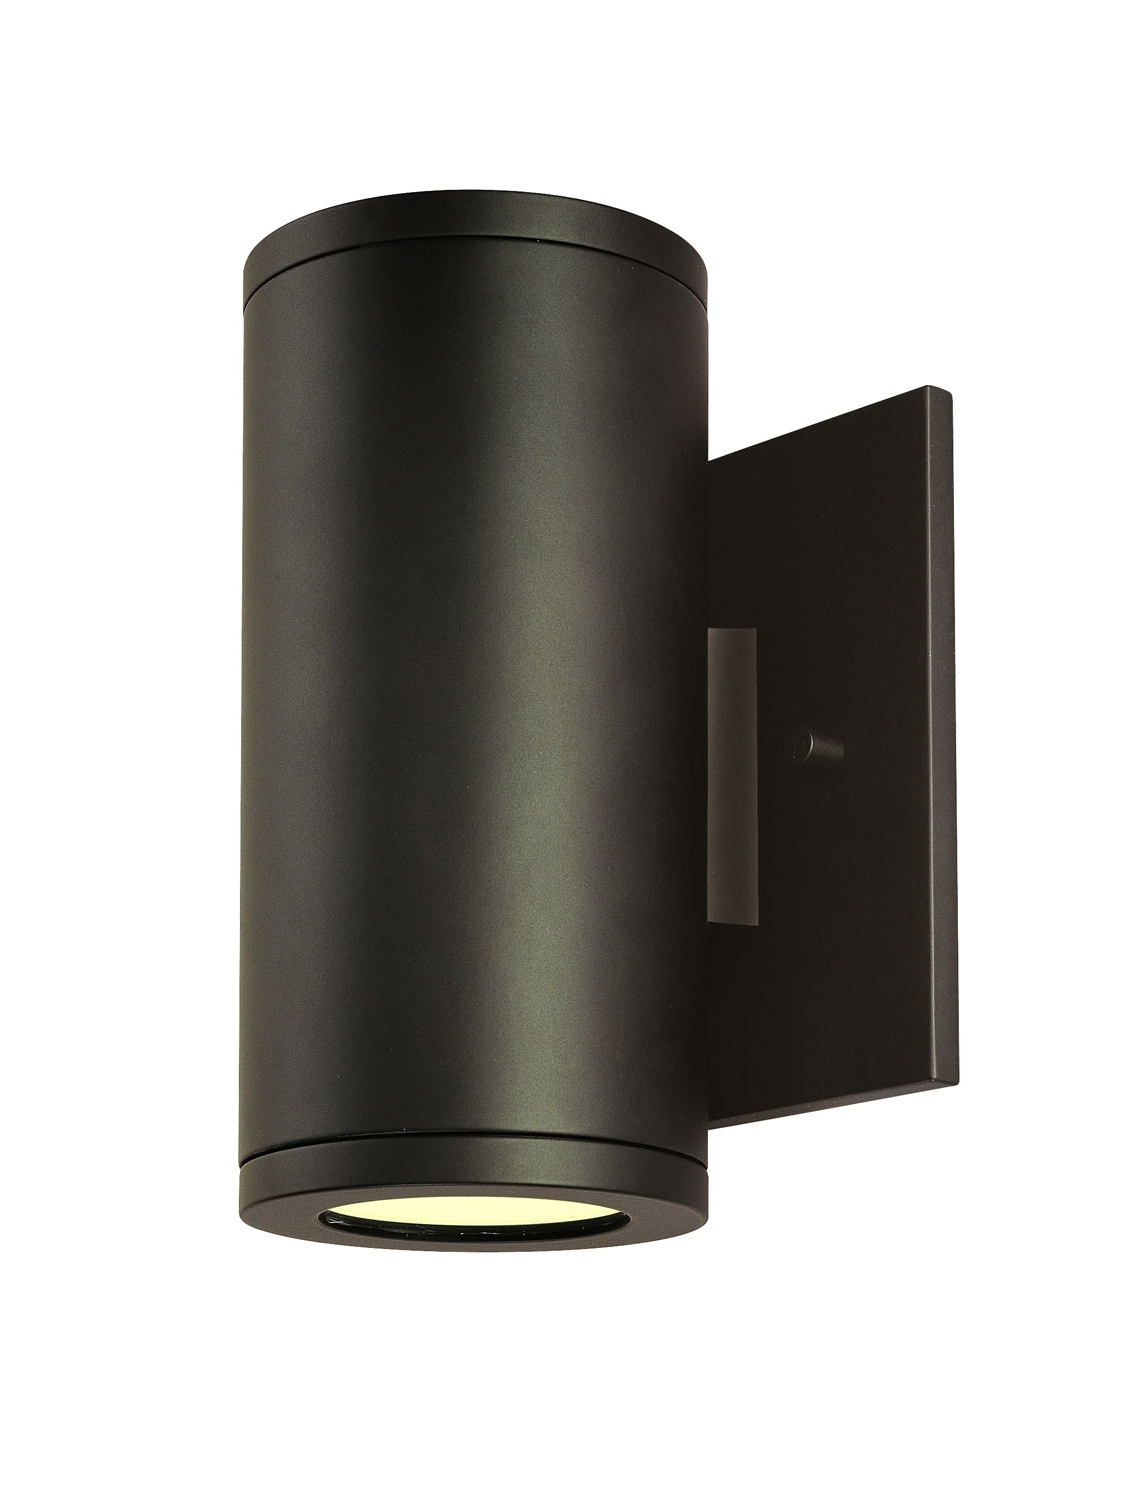 Famous Outdoor Wall Mounted Decorative Lighting Throughout Light : Wooden Outdoor Wall Mounted Light Fixtures Brown Simple (View 5 of 20)